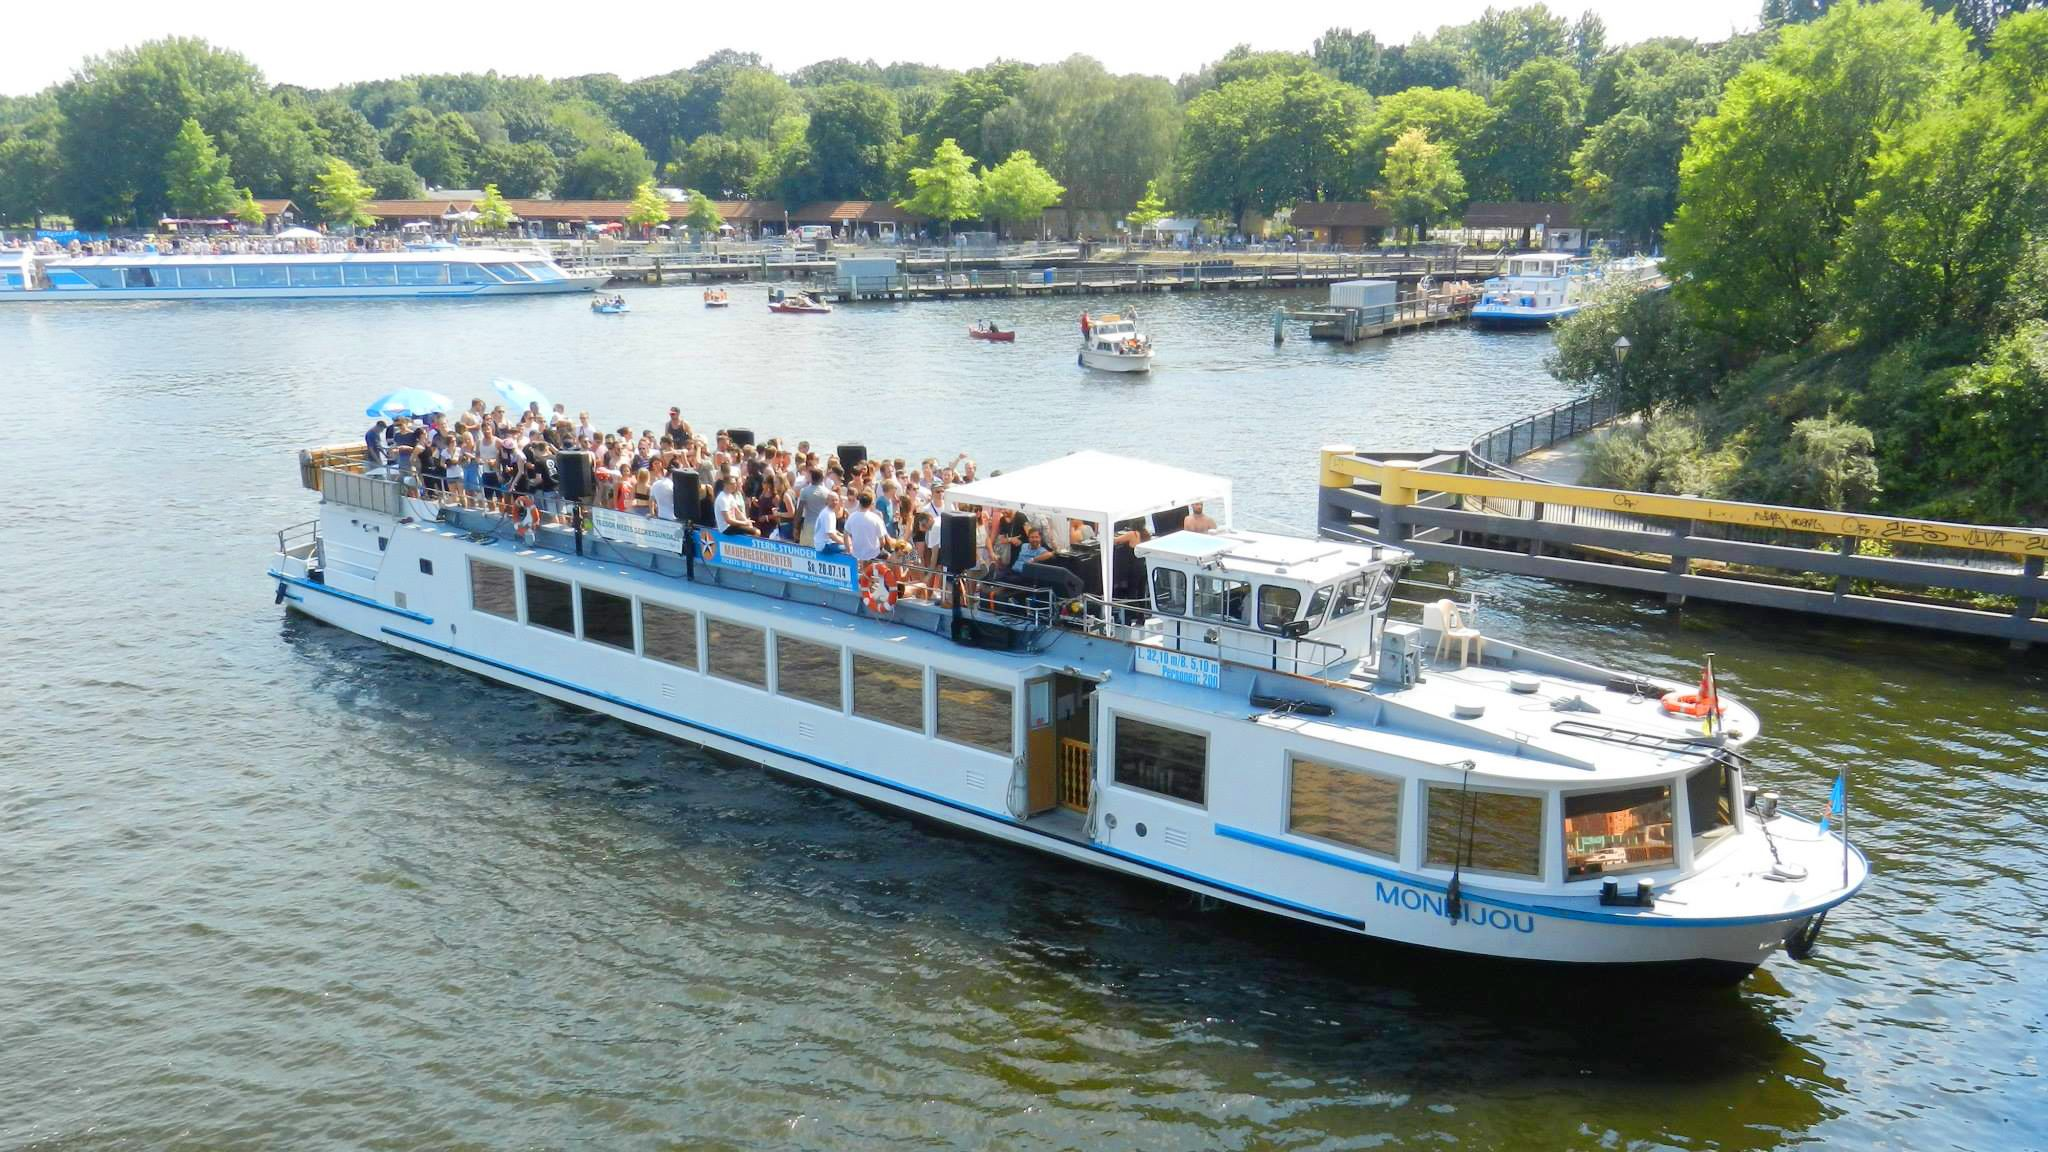 river cruise boat on the Spree river in Berlin